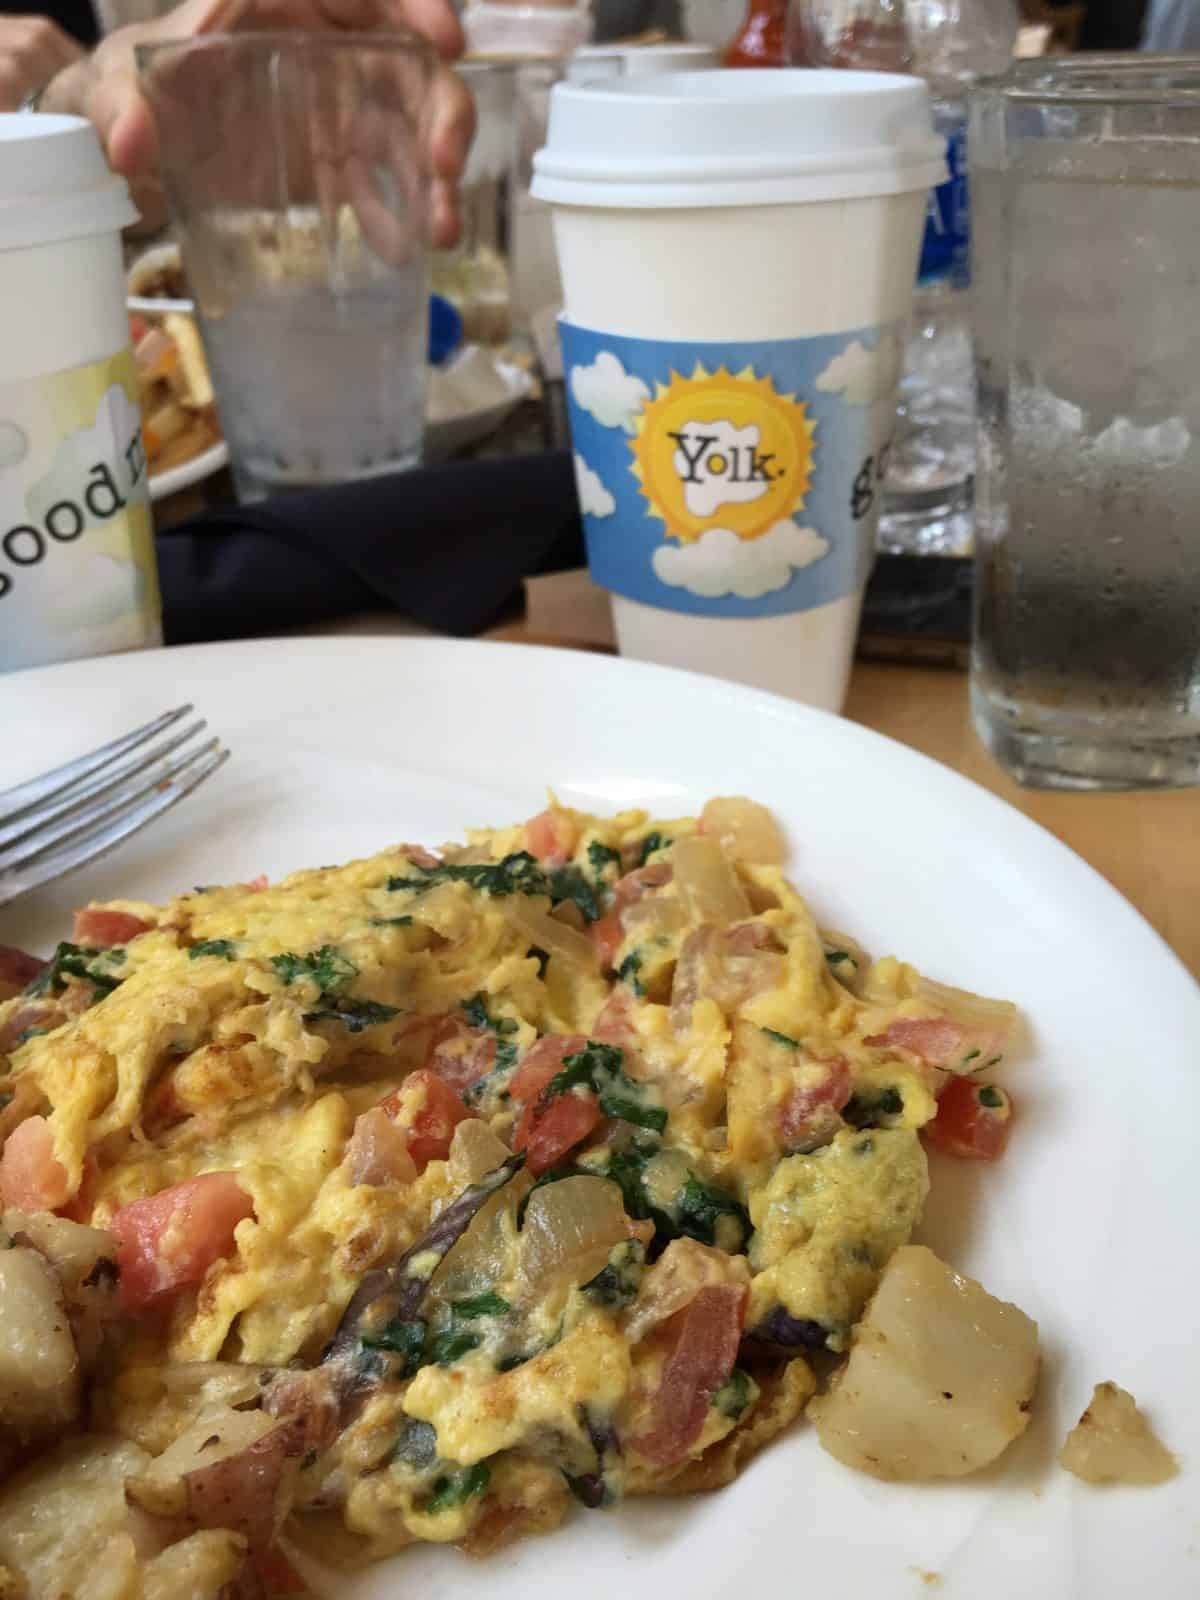 A delicious breakfast hash at Yolk in Chicago